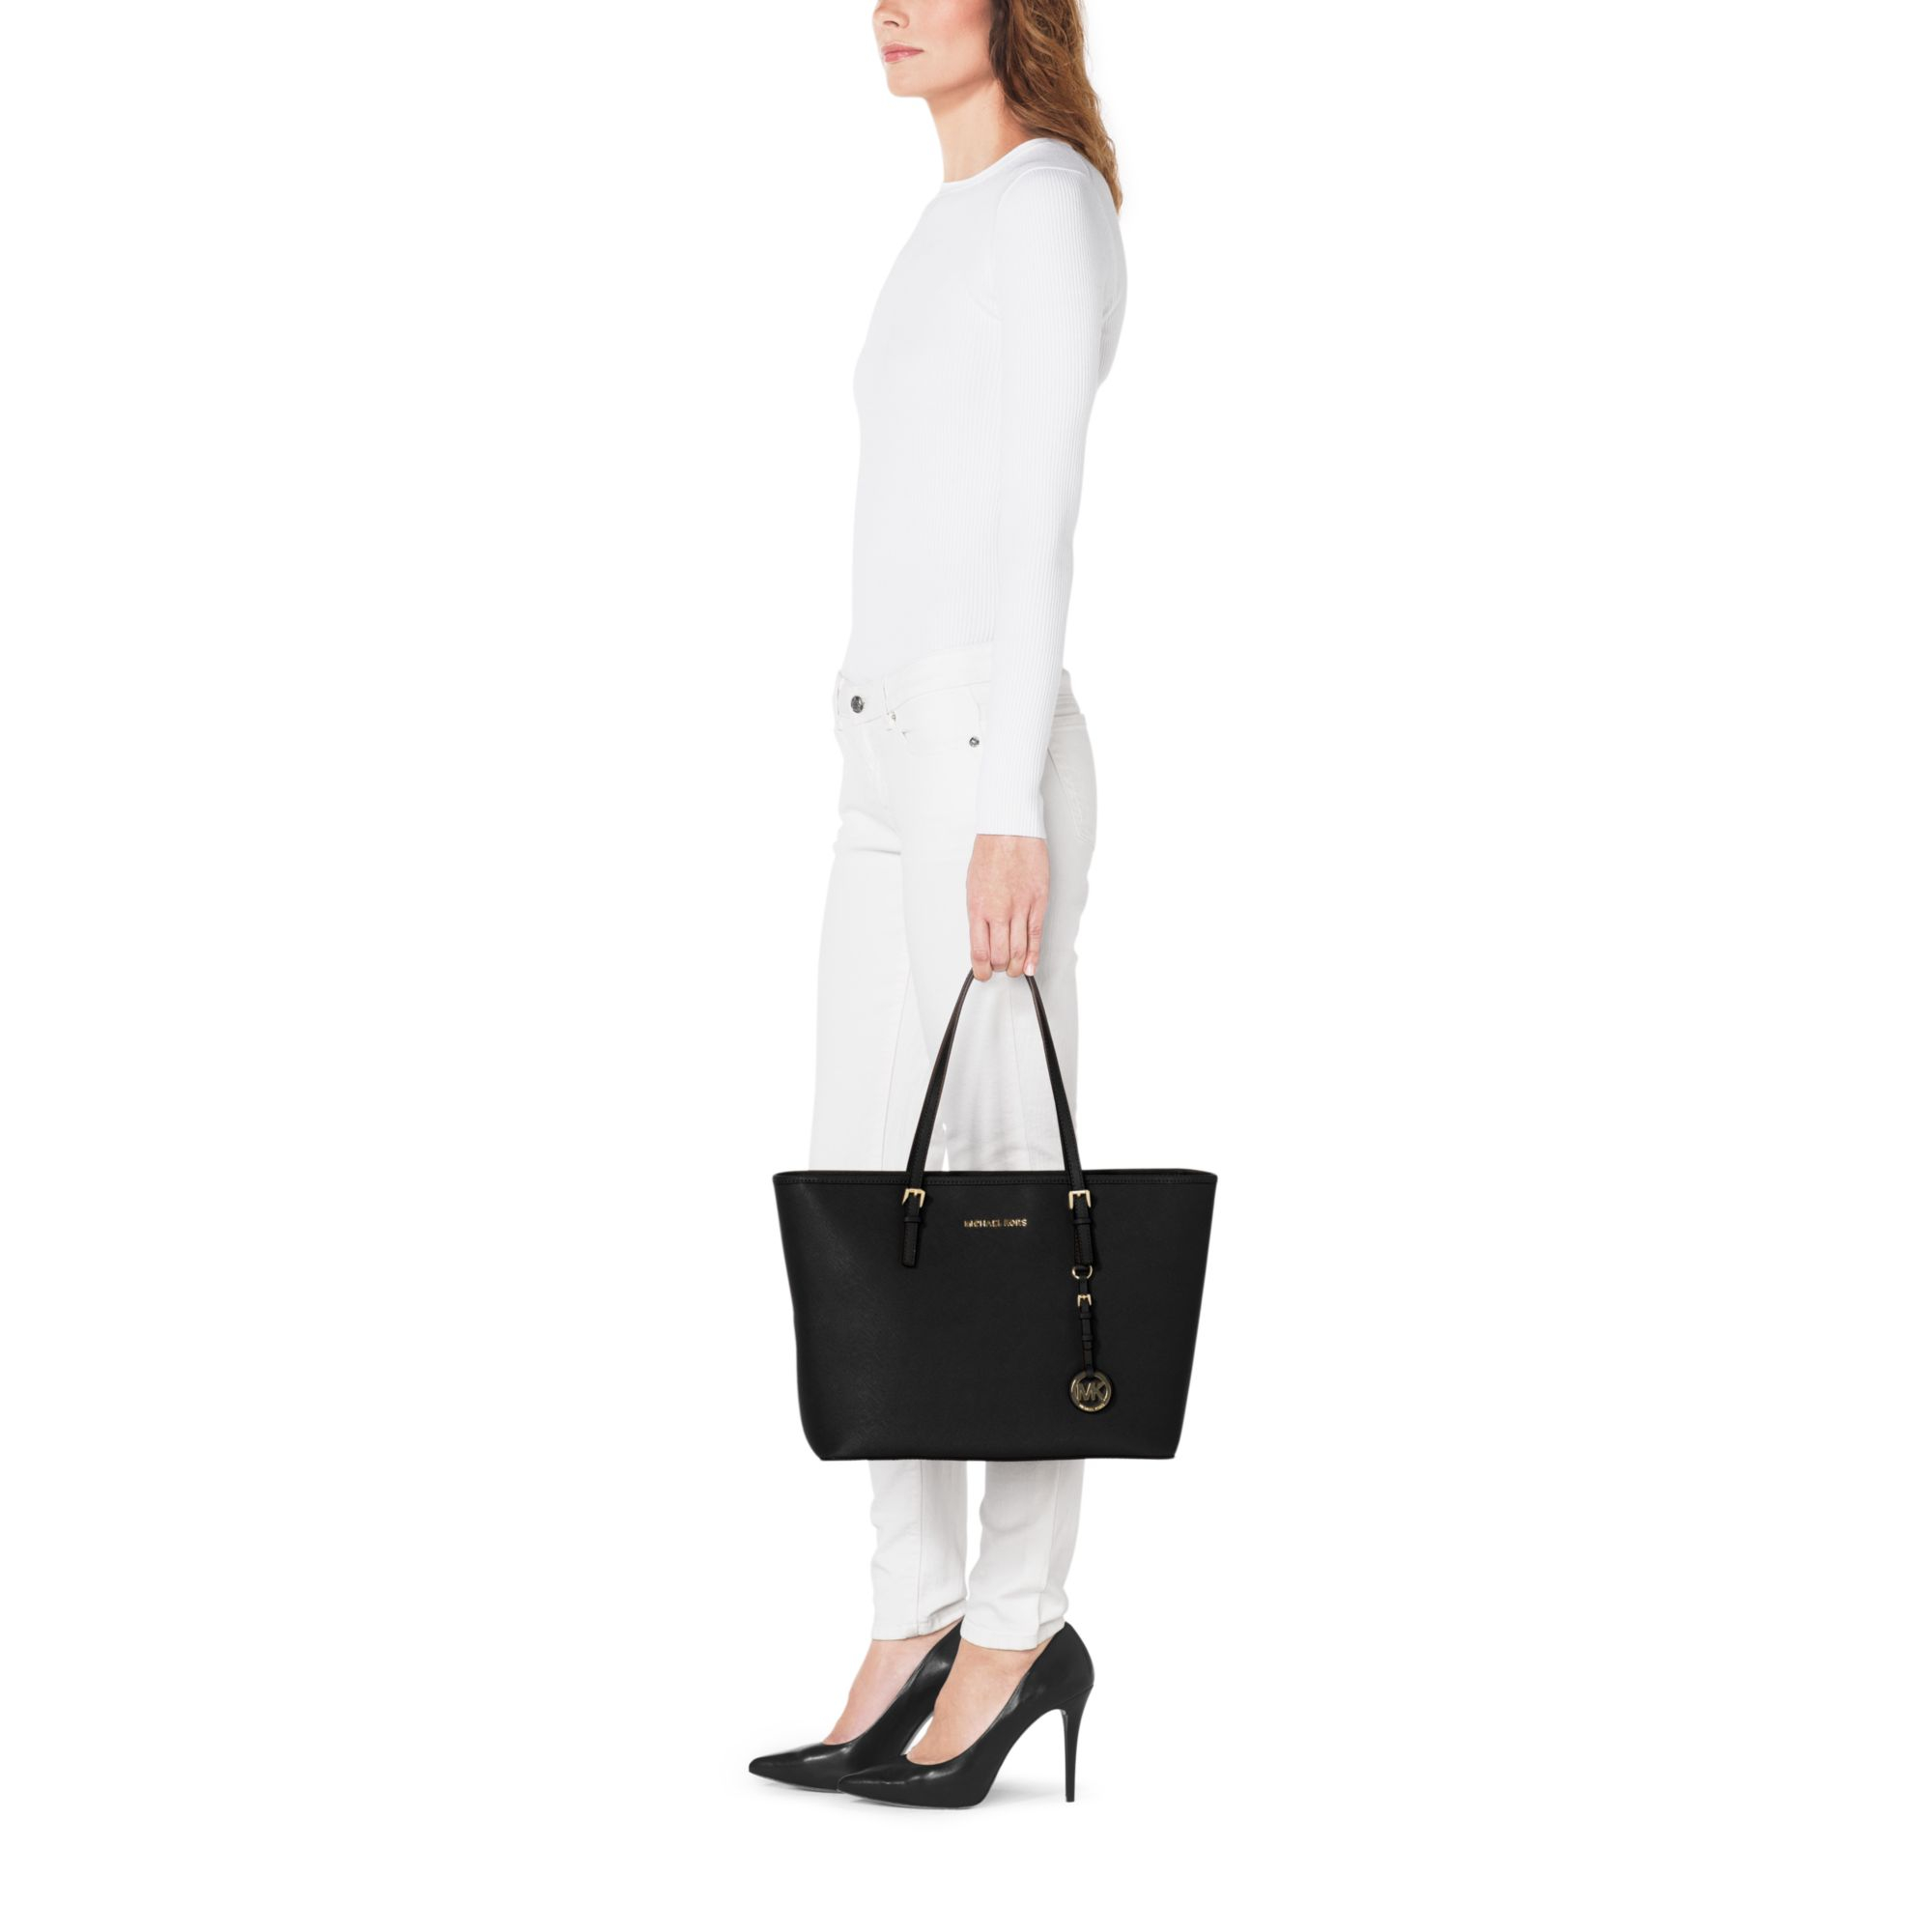 eb2ebf4e171a5 Lyst - Michael Kors Jet Set Travel Saffiano Leather Top-zip Tote in ...